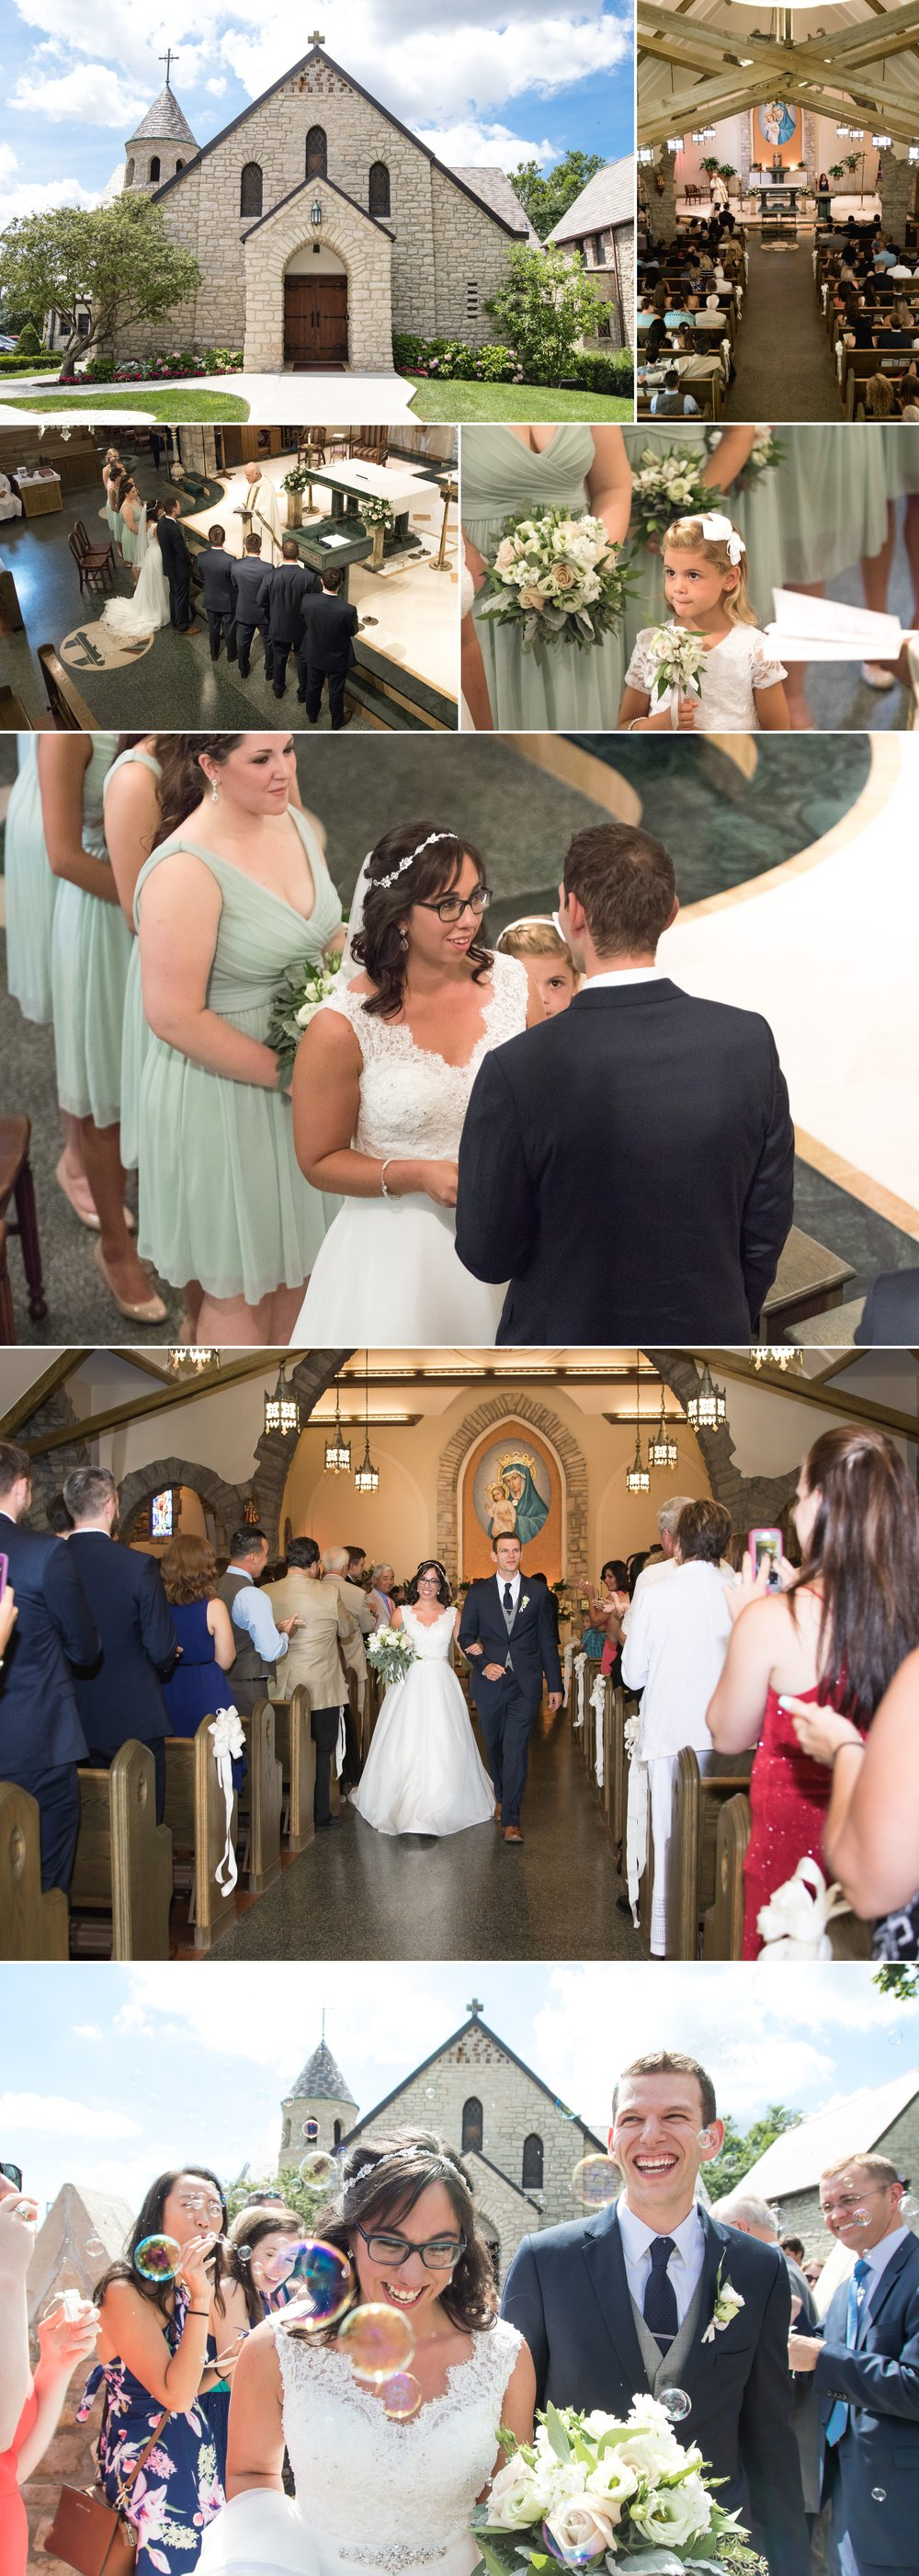 our-lady-of-victory-catholic-church-wedding-ceremony-the-blackwell-reception-portraits-columbus-ohio-muschlitz-photography-004.JPG